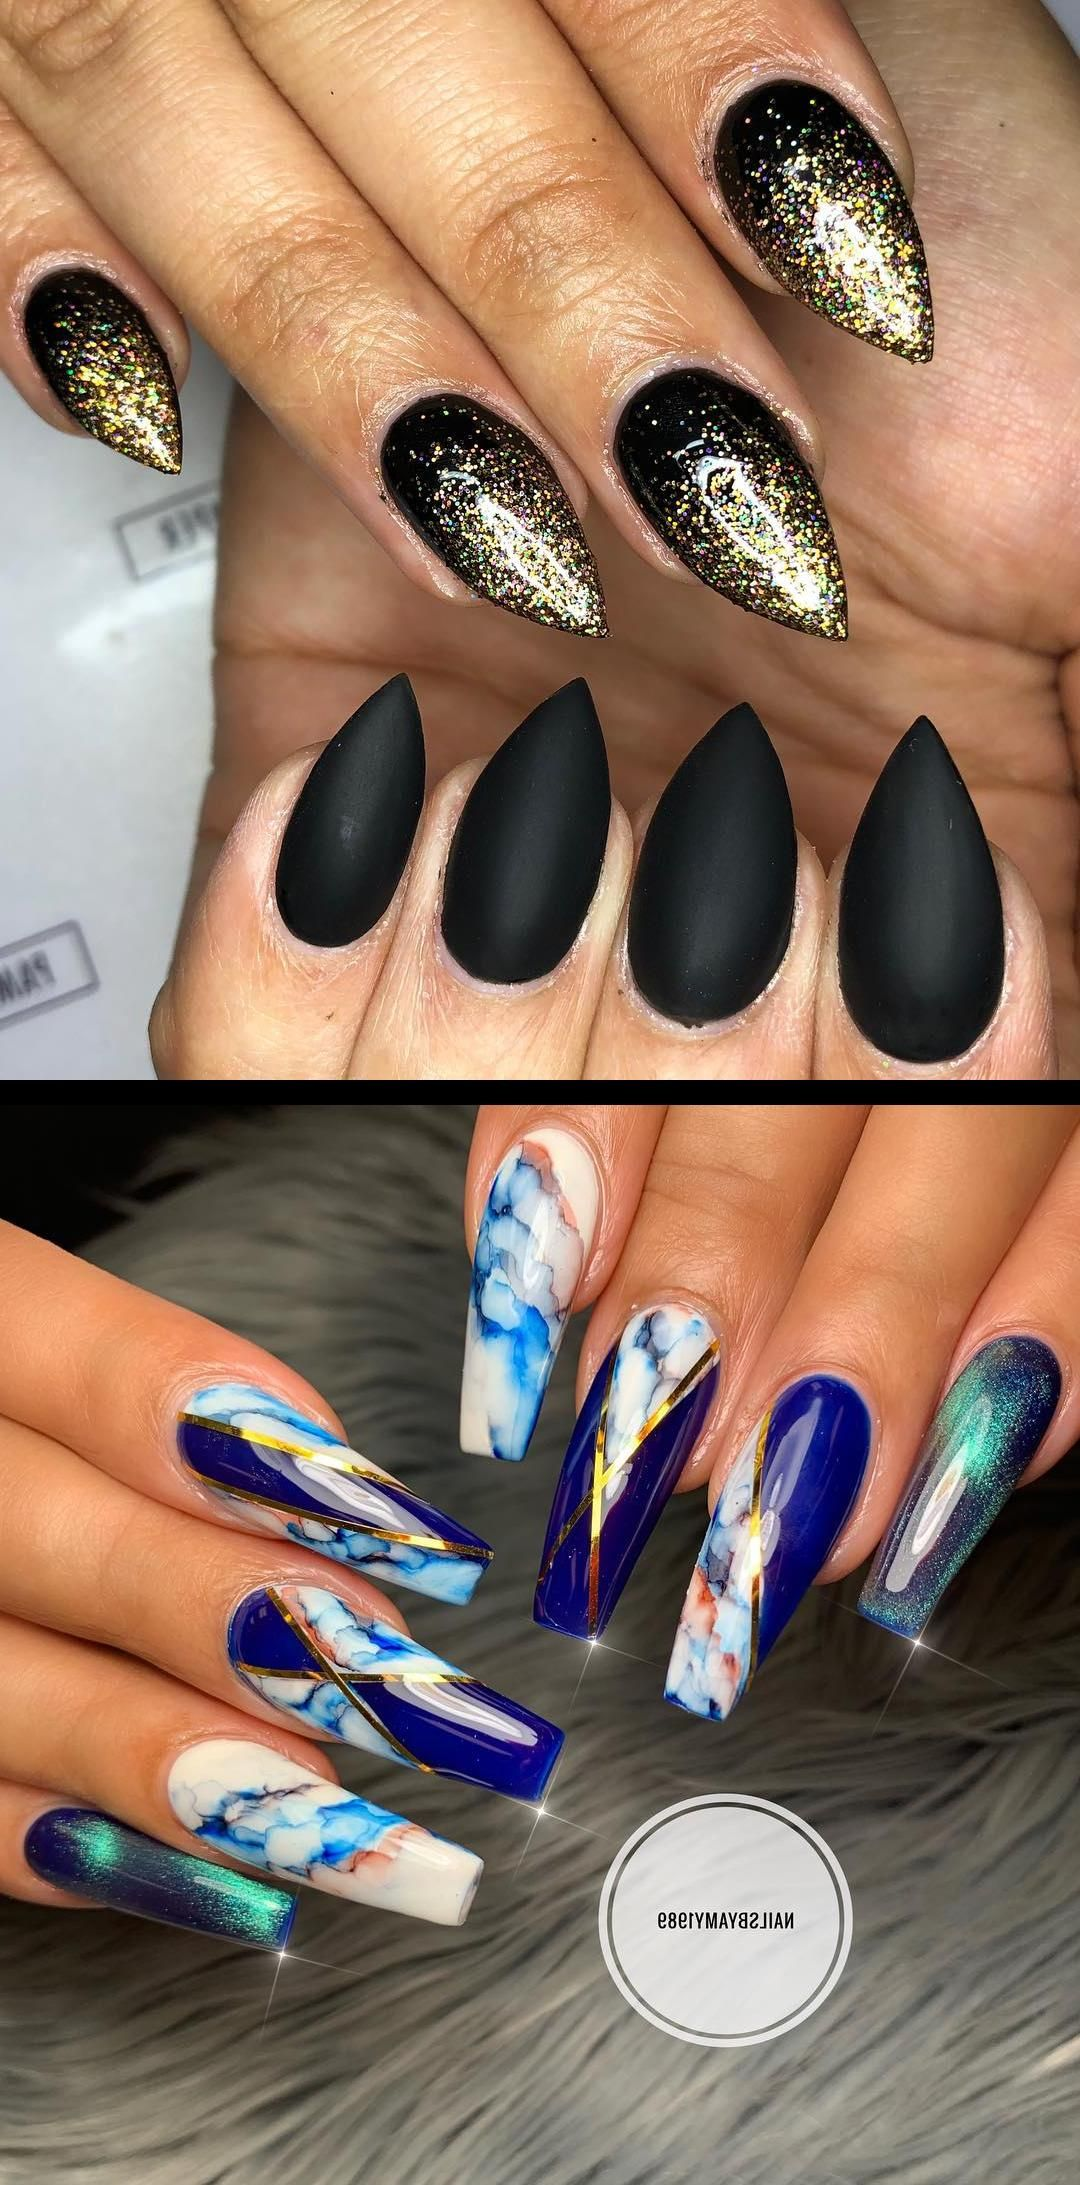 Minda's Ideas: 15 Casual Nails That Will Save You From Stressing 2019 #nailoval